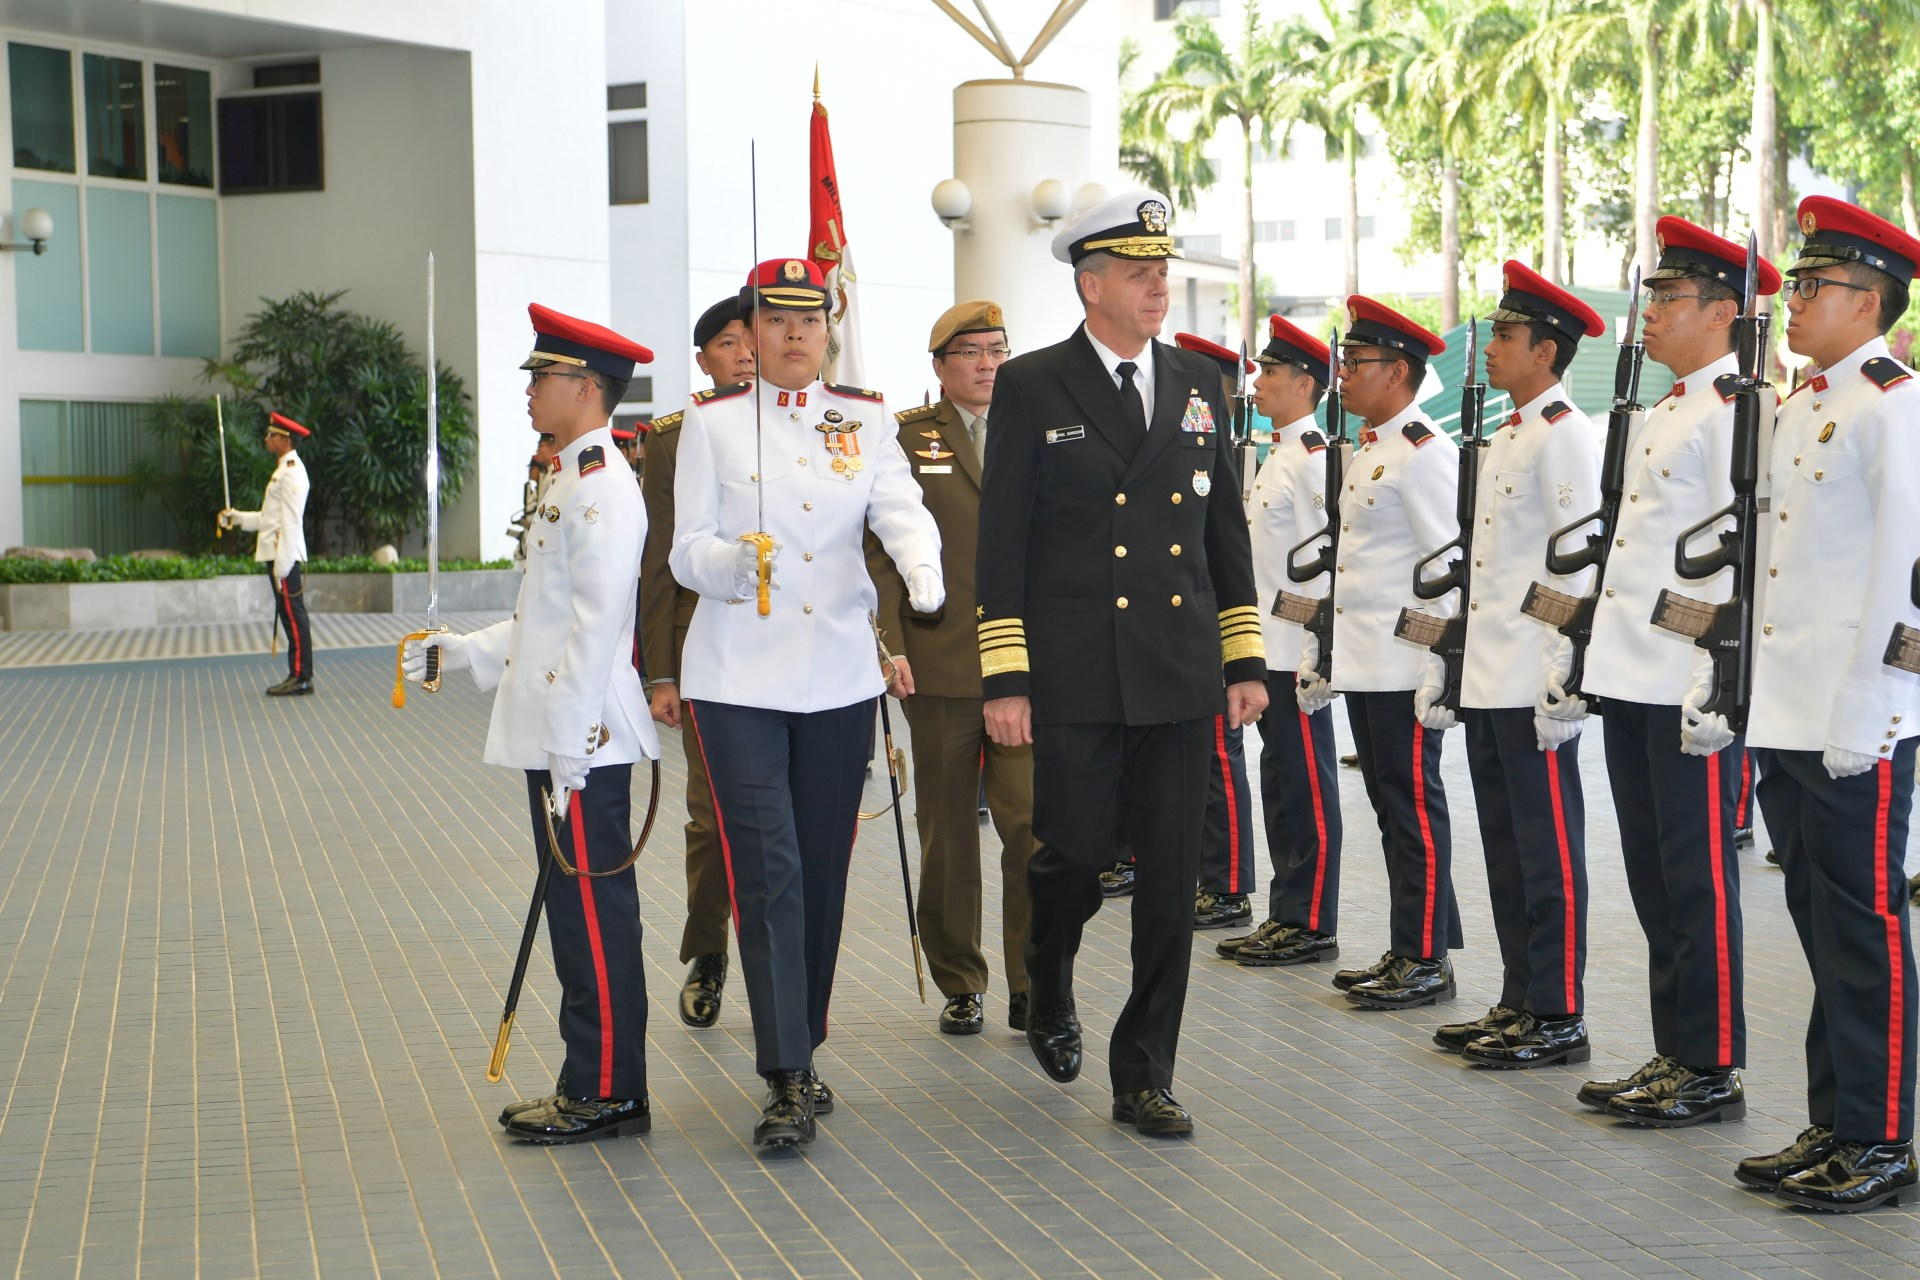 ADM Davidson reviewing a Guard of Honour at MINDEF.